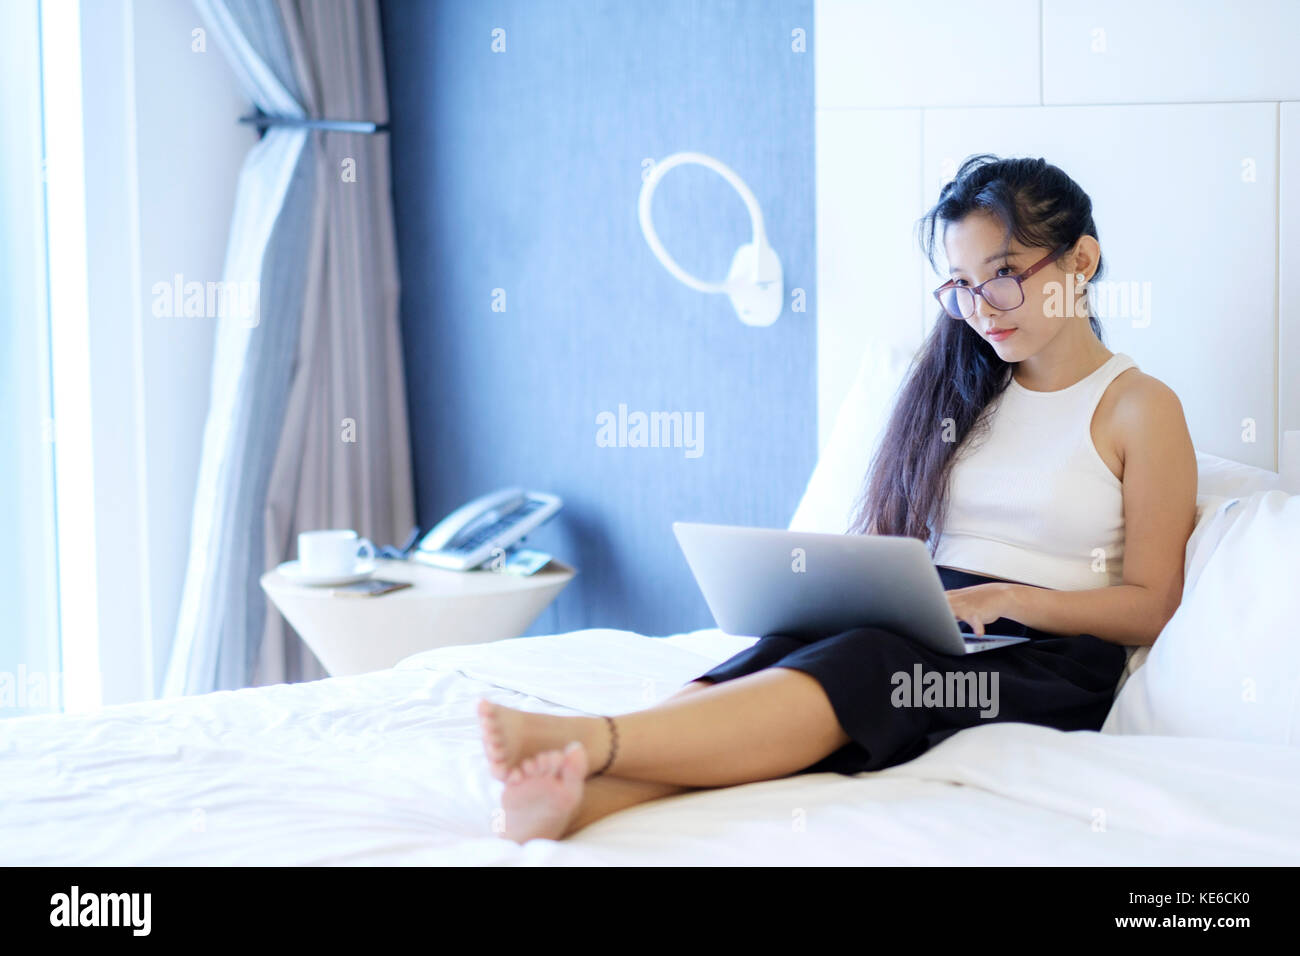 Young Asian business woman working in her hotel room - Stock Image